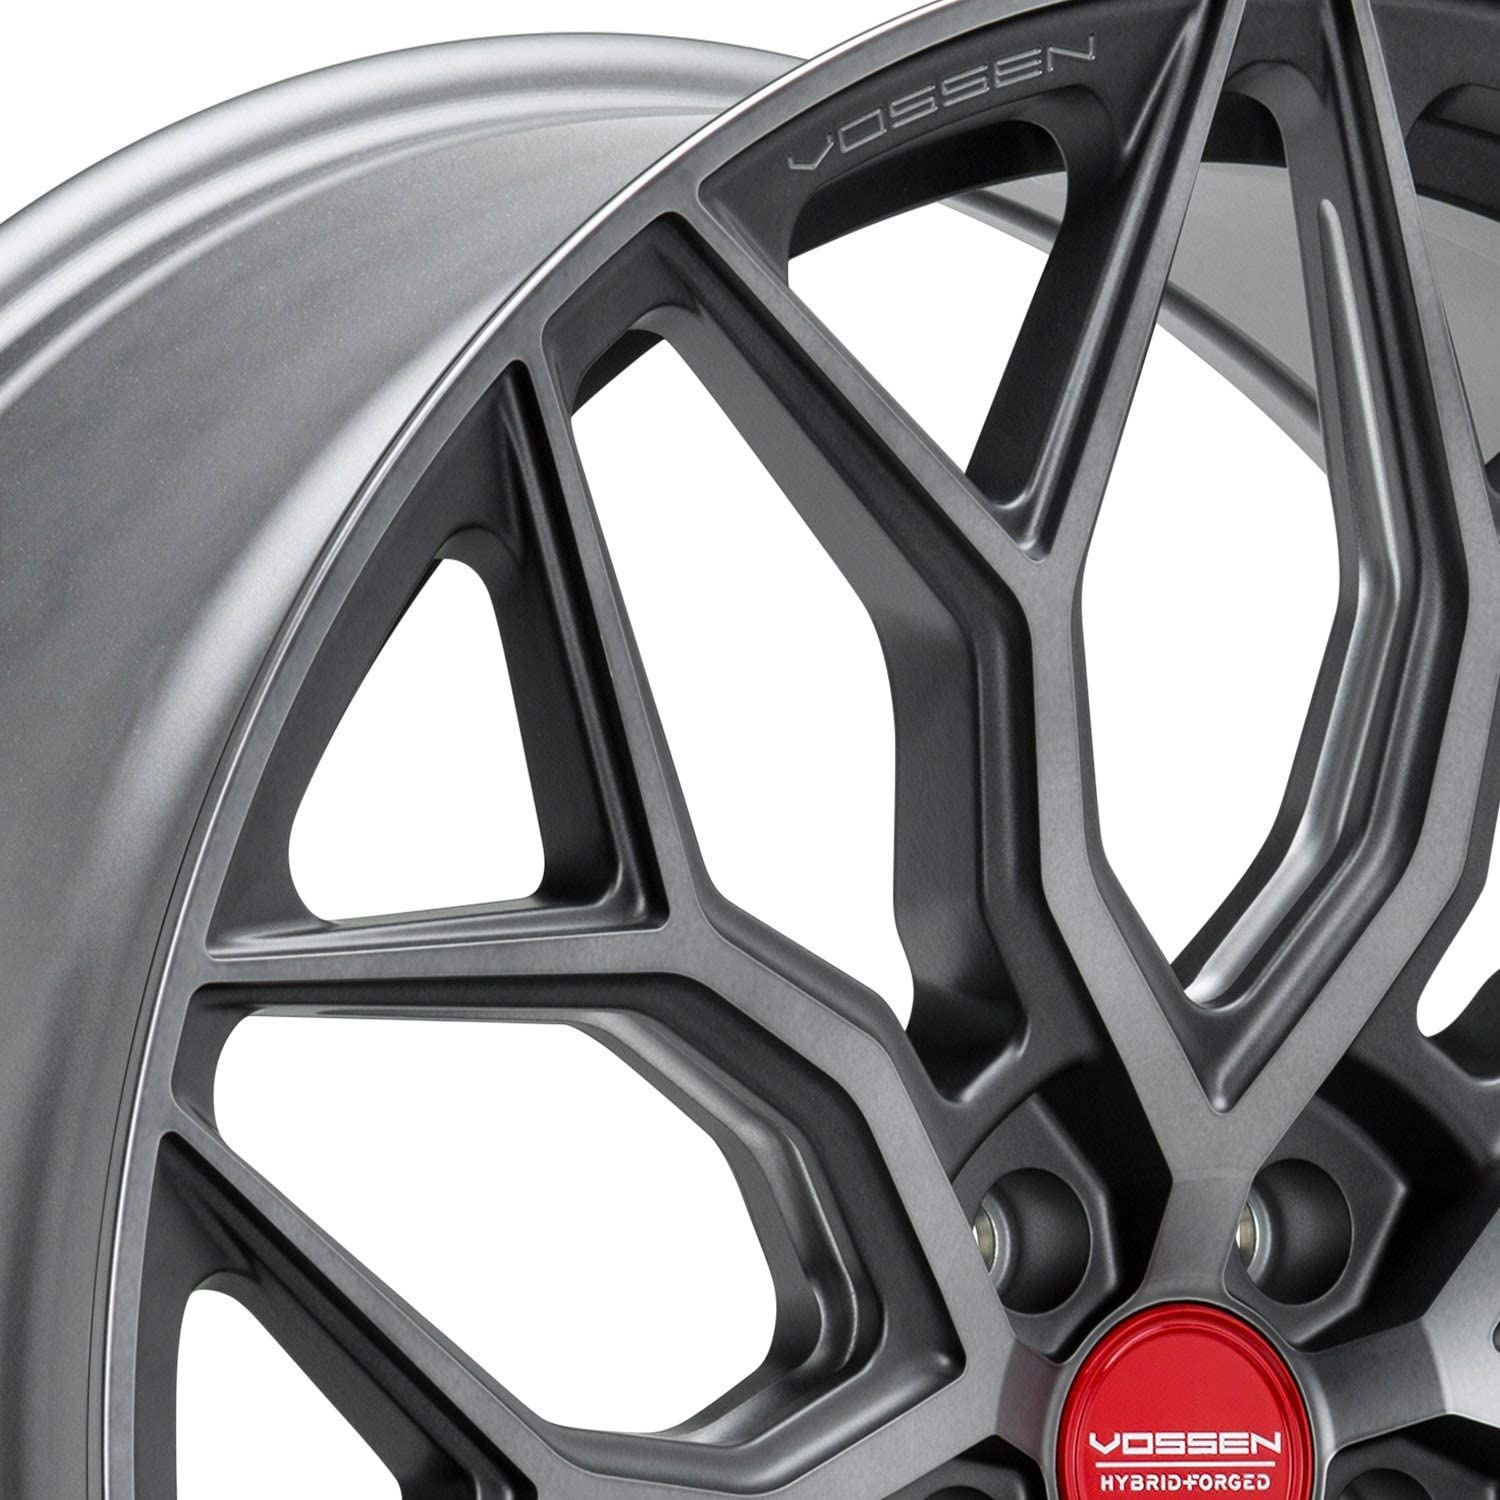 HOSTILE Fury Gloss Black Wheel with Milled Finish 22 x 12. inches //6 x 139 mm, -44 mm Offset